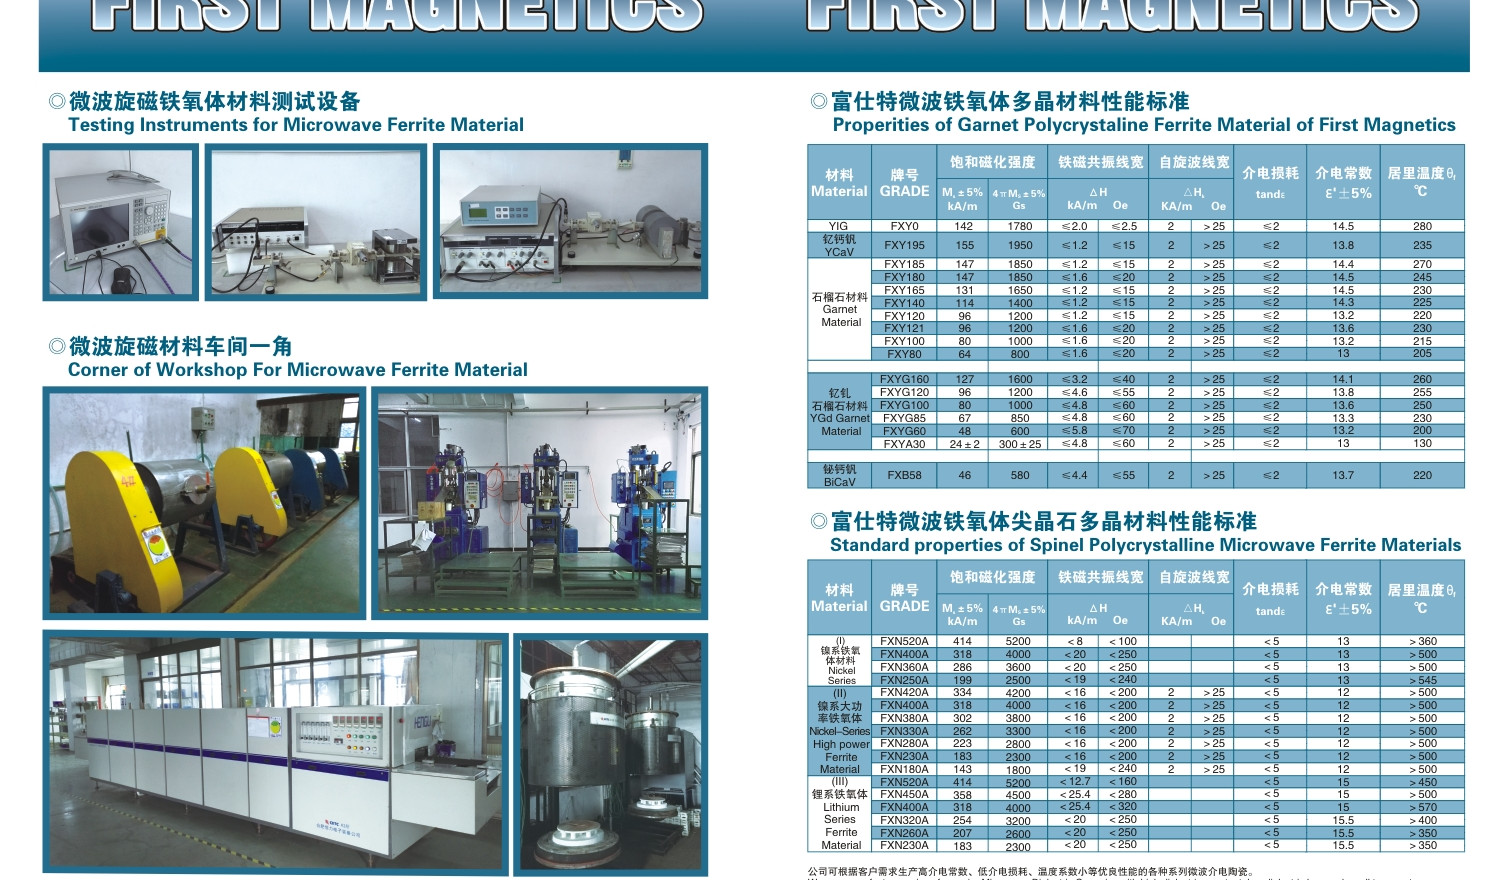 Microwave factory and Properties